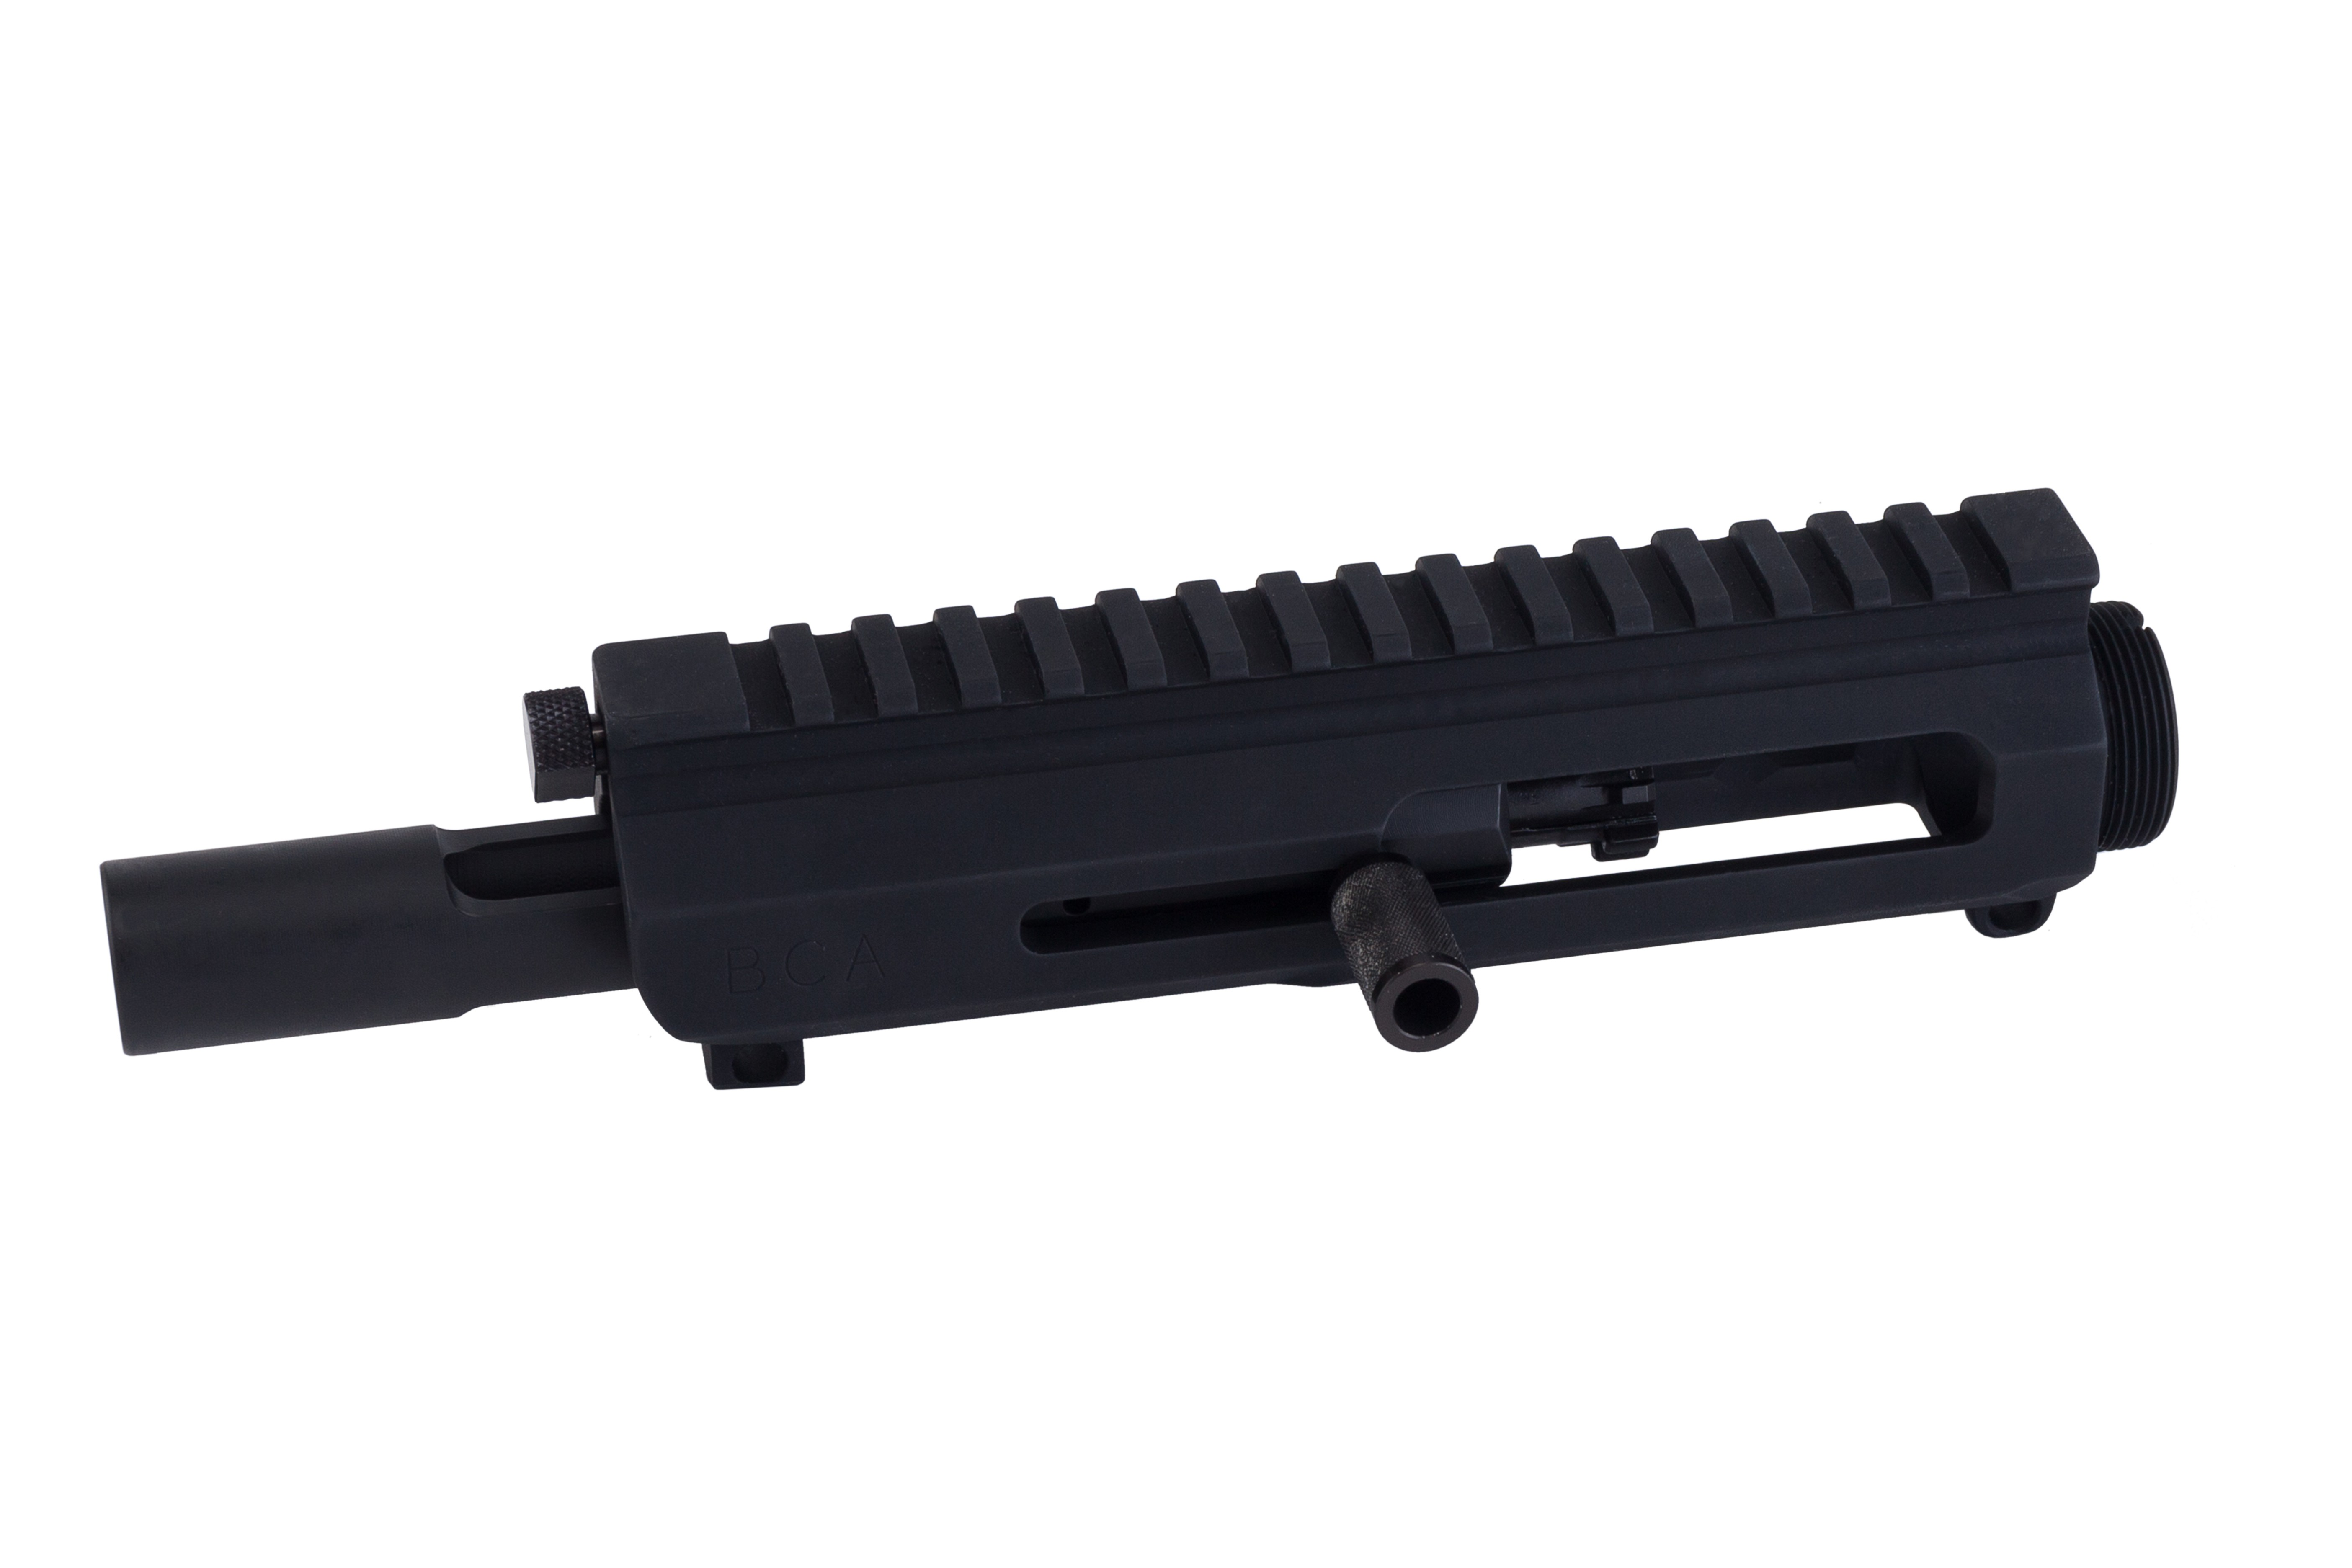 Gibbz Arms G4 Side Charging AR15 Uppers Review - Gear Report